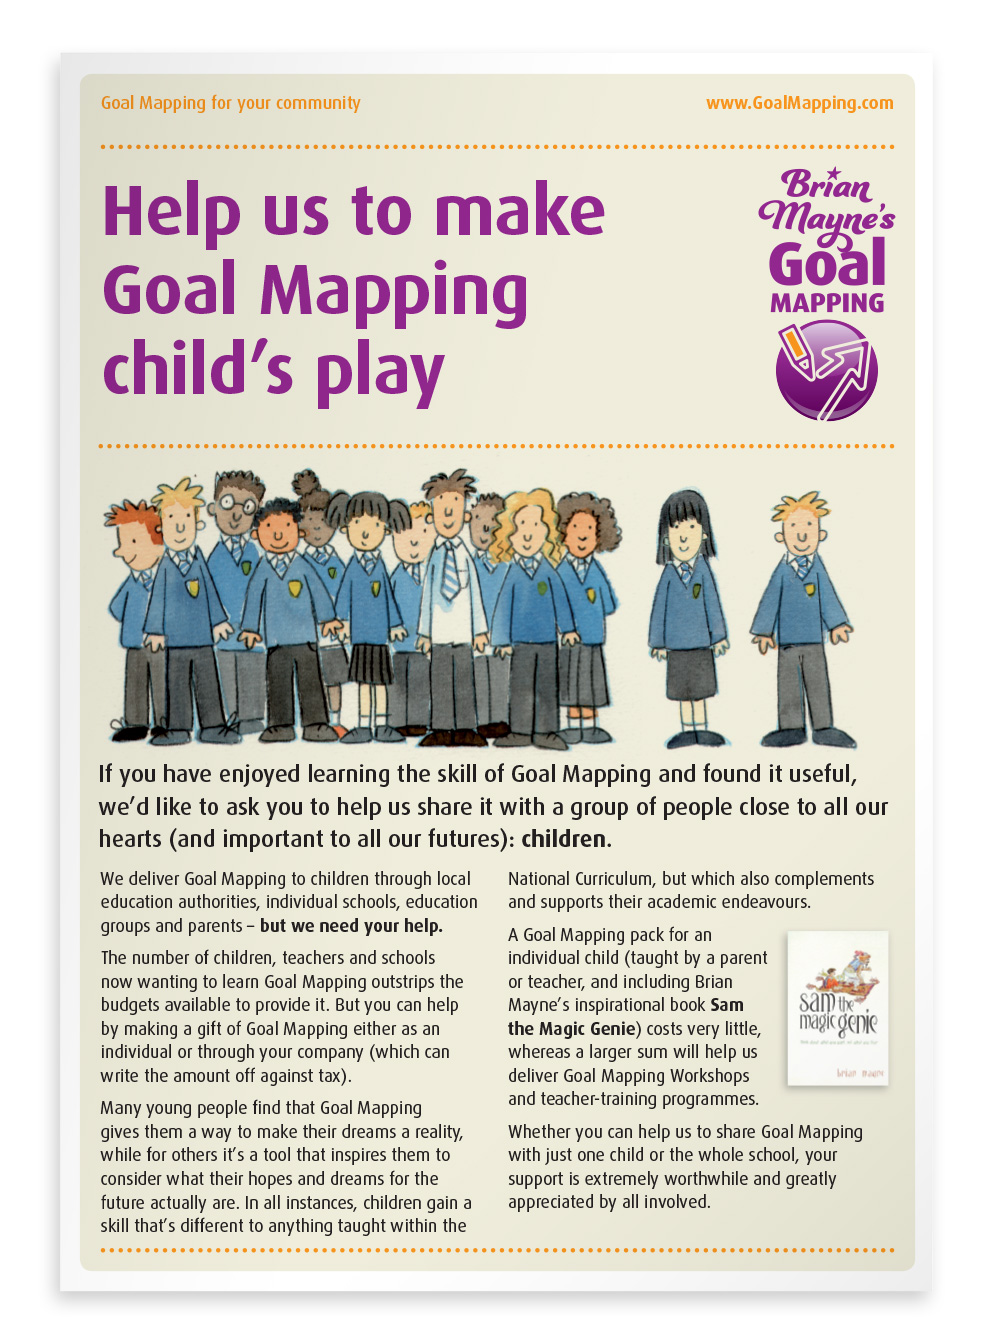 2-page flyer promoting Goal Mapping for children